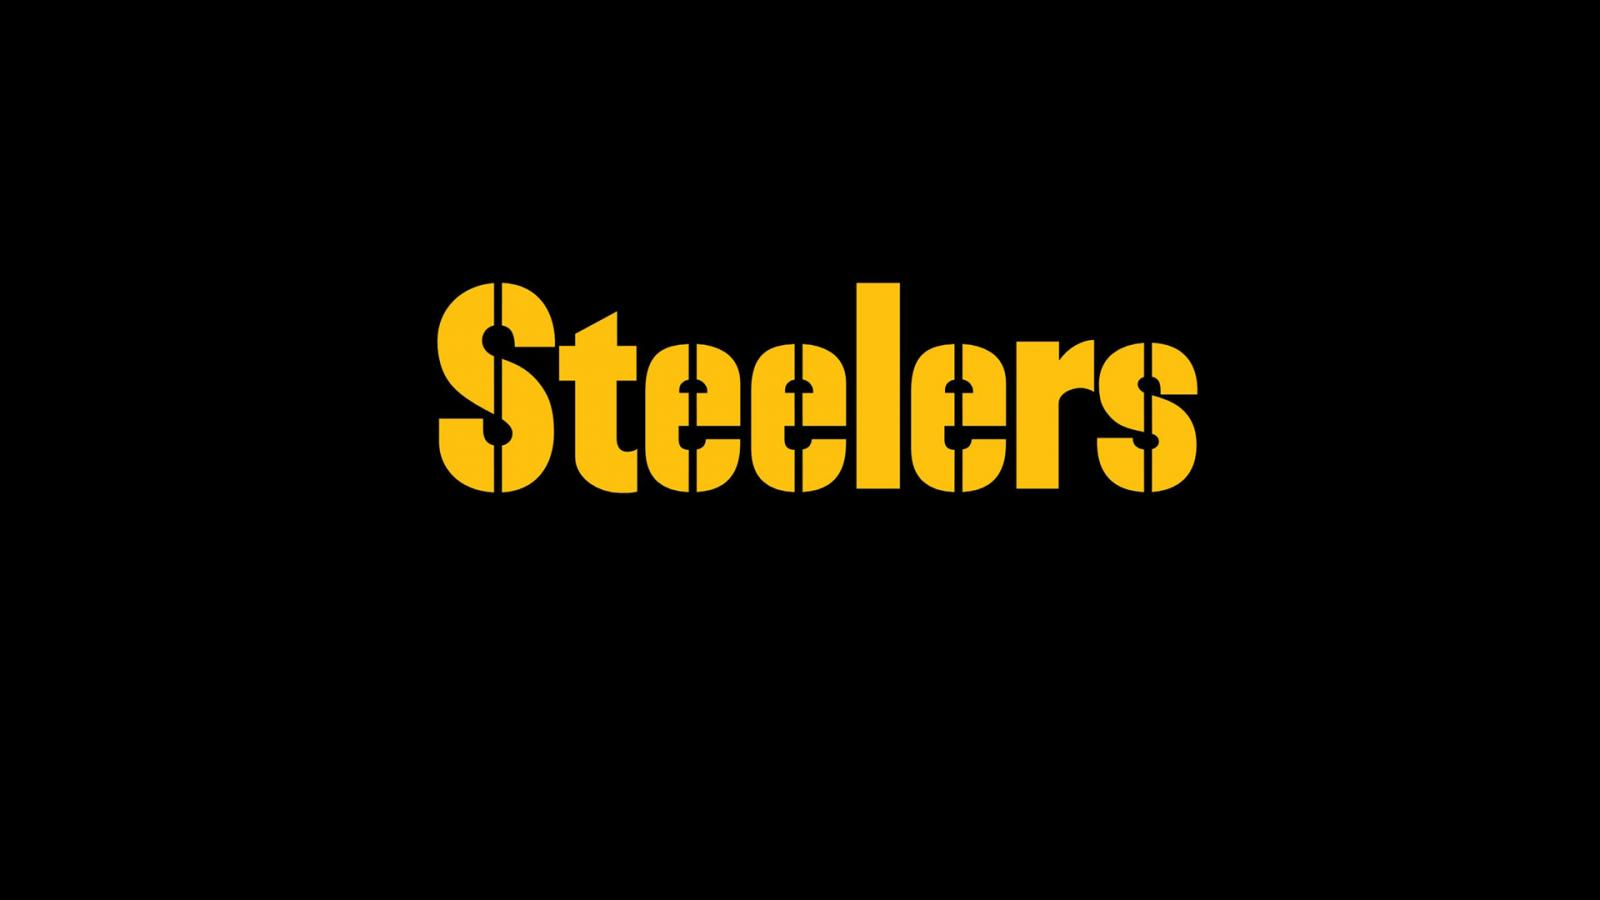 steelers text wallpaper with dark background 15 of 37